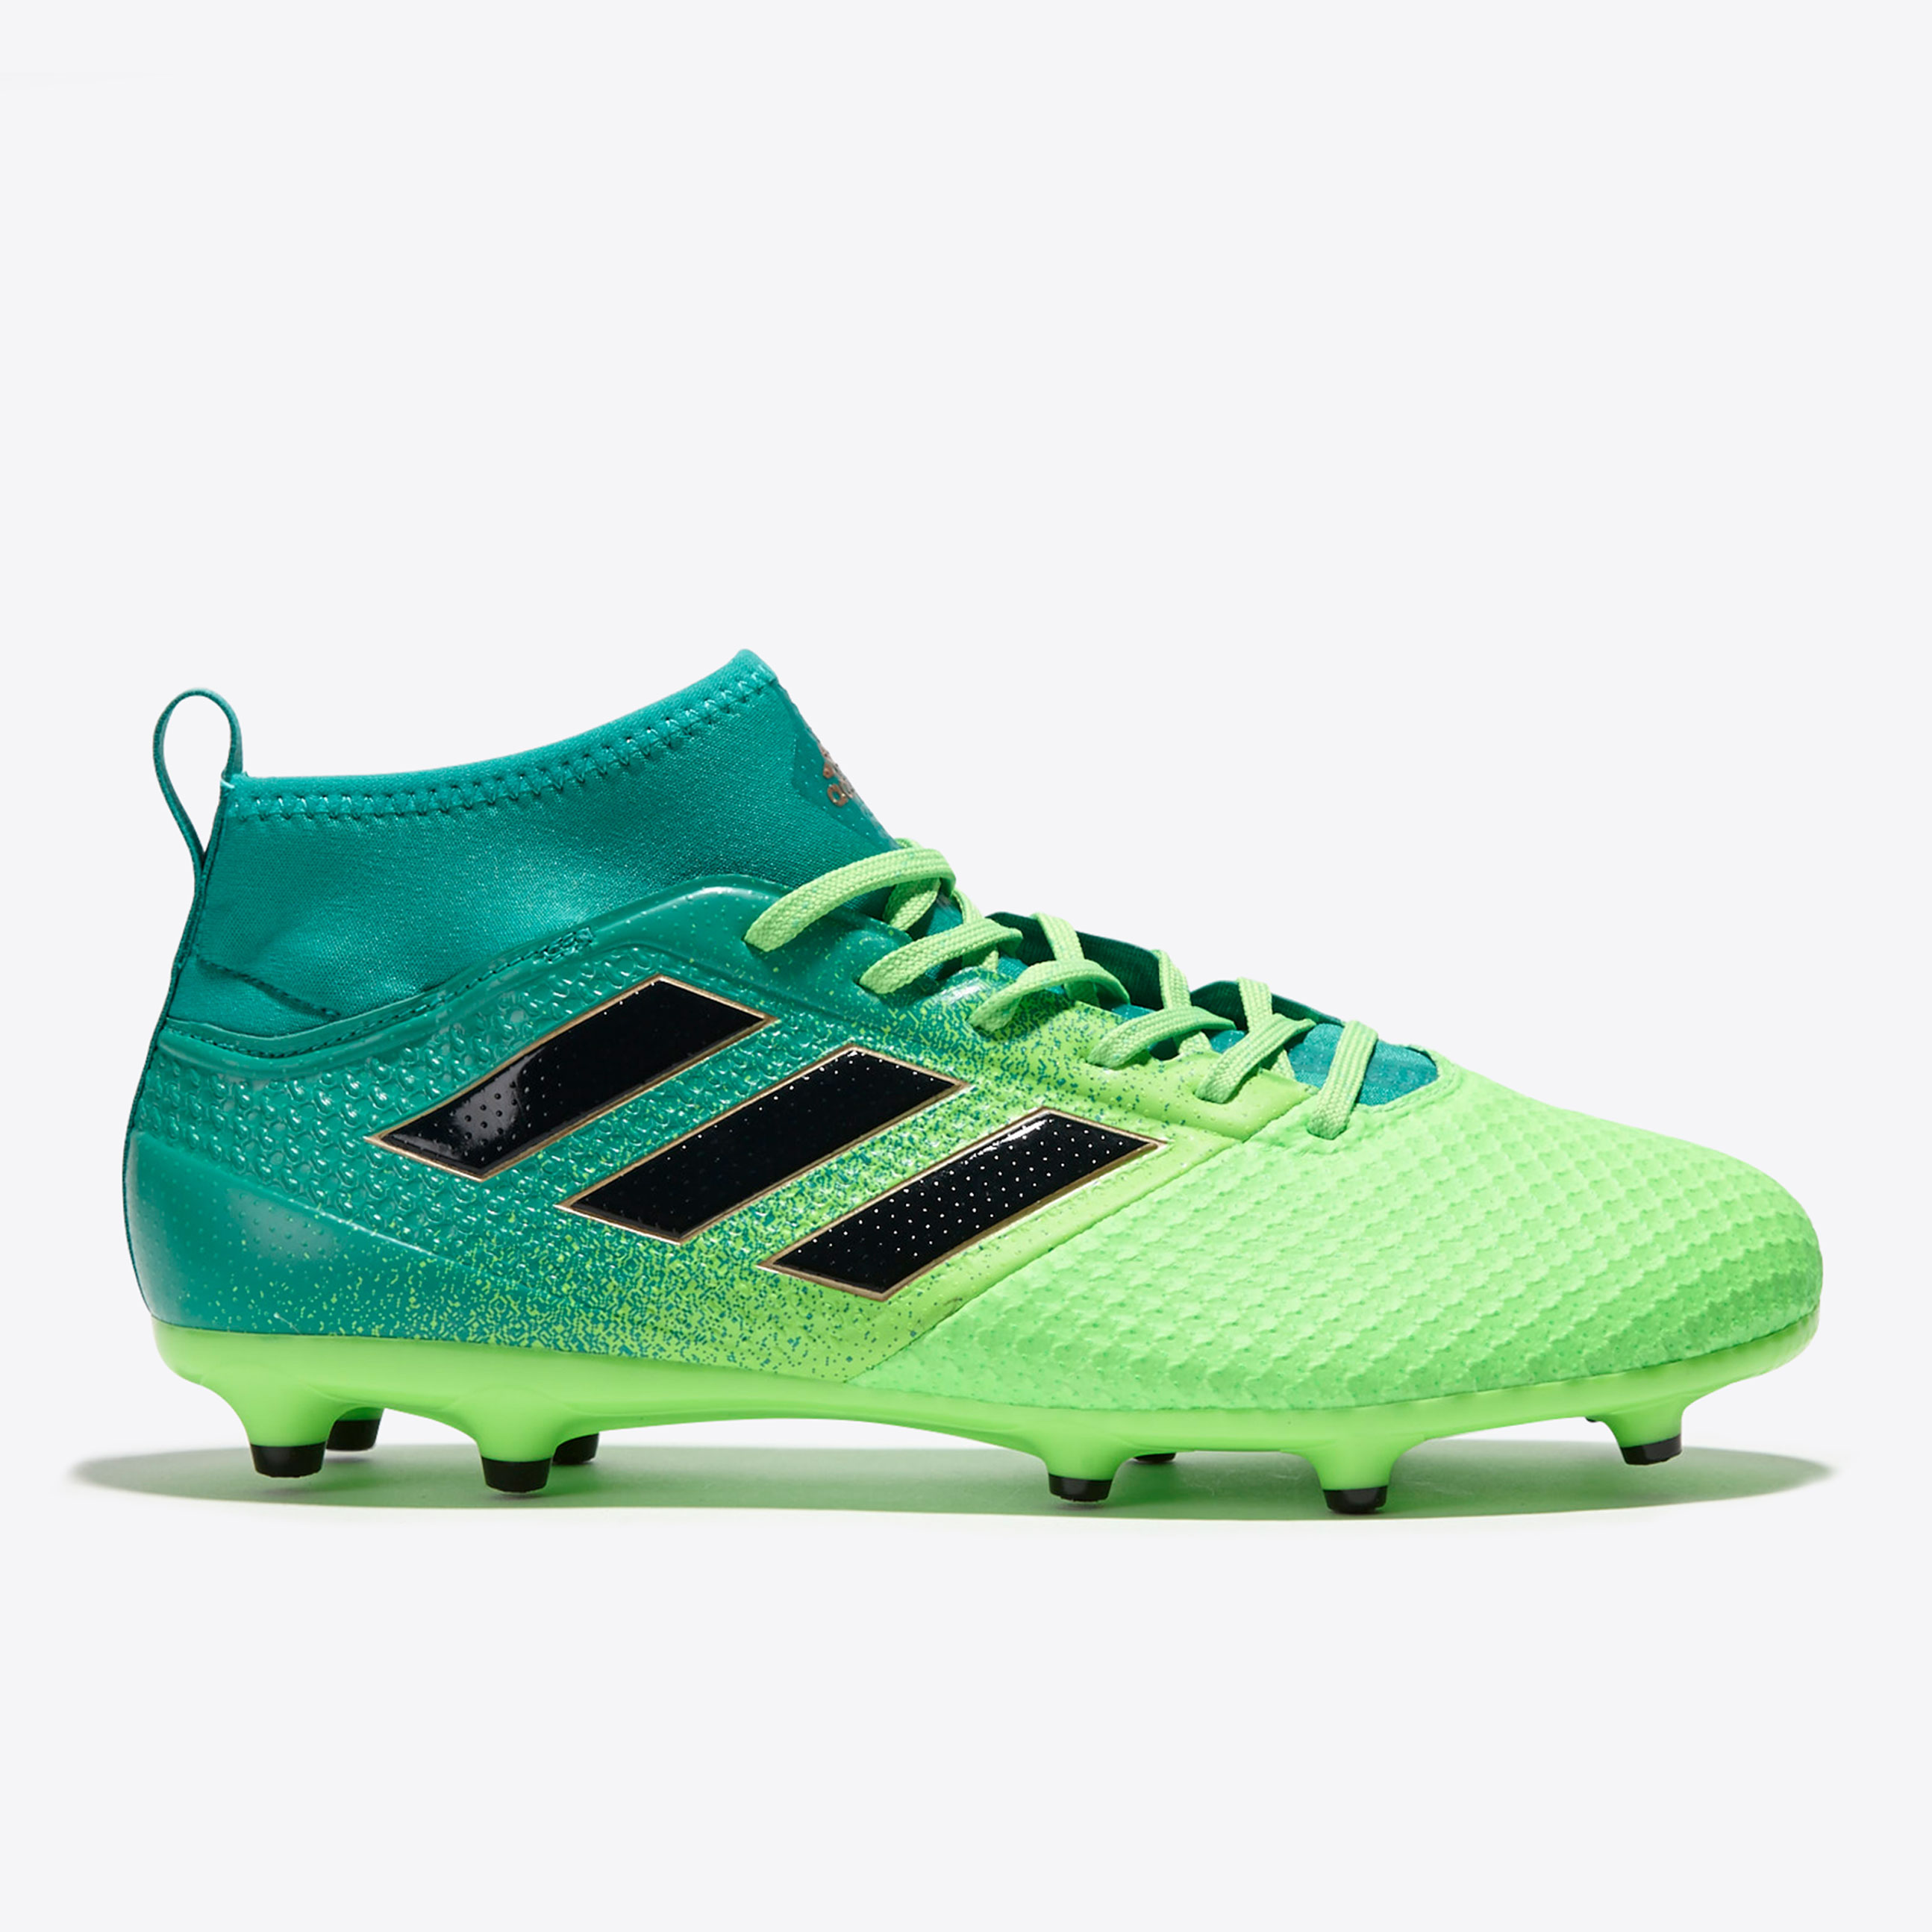 Image of adidas Ace 17.3 Primemesh Firm Ground Football Boots - Solar Green/Cor